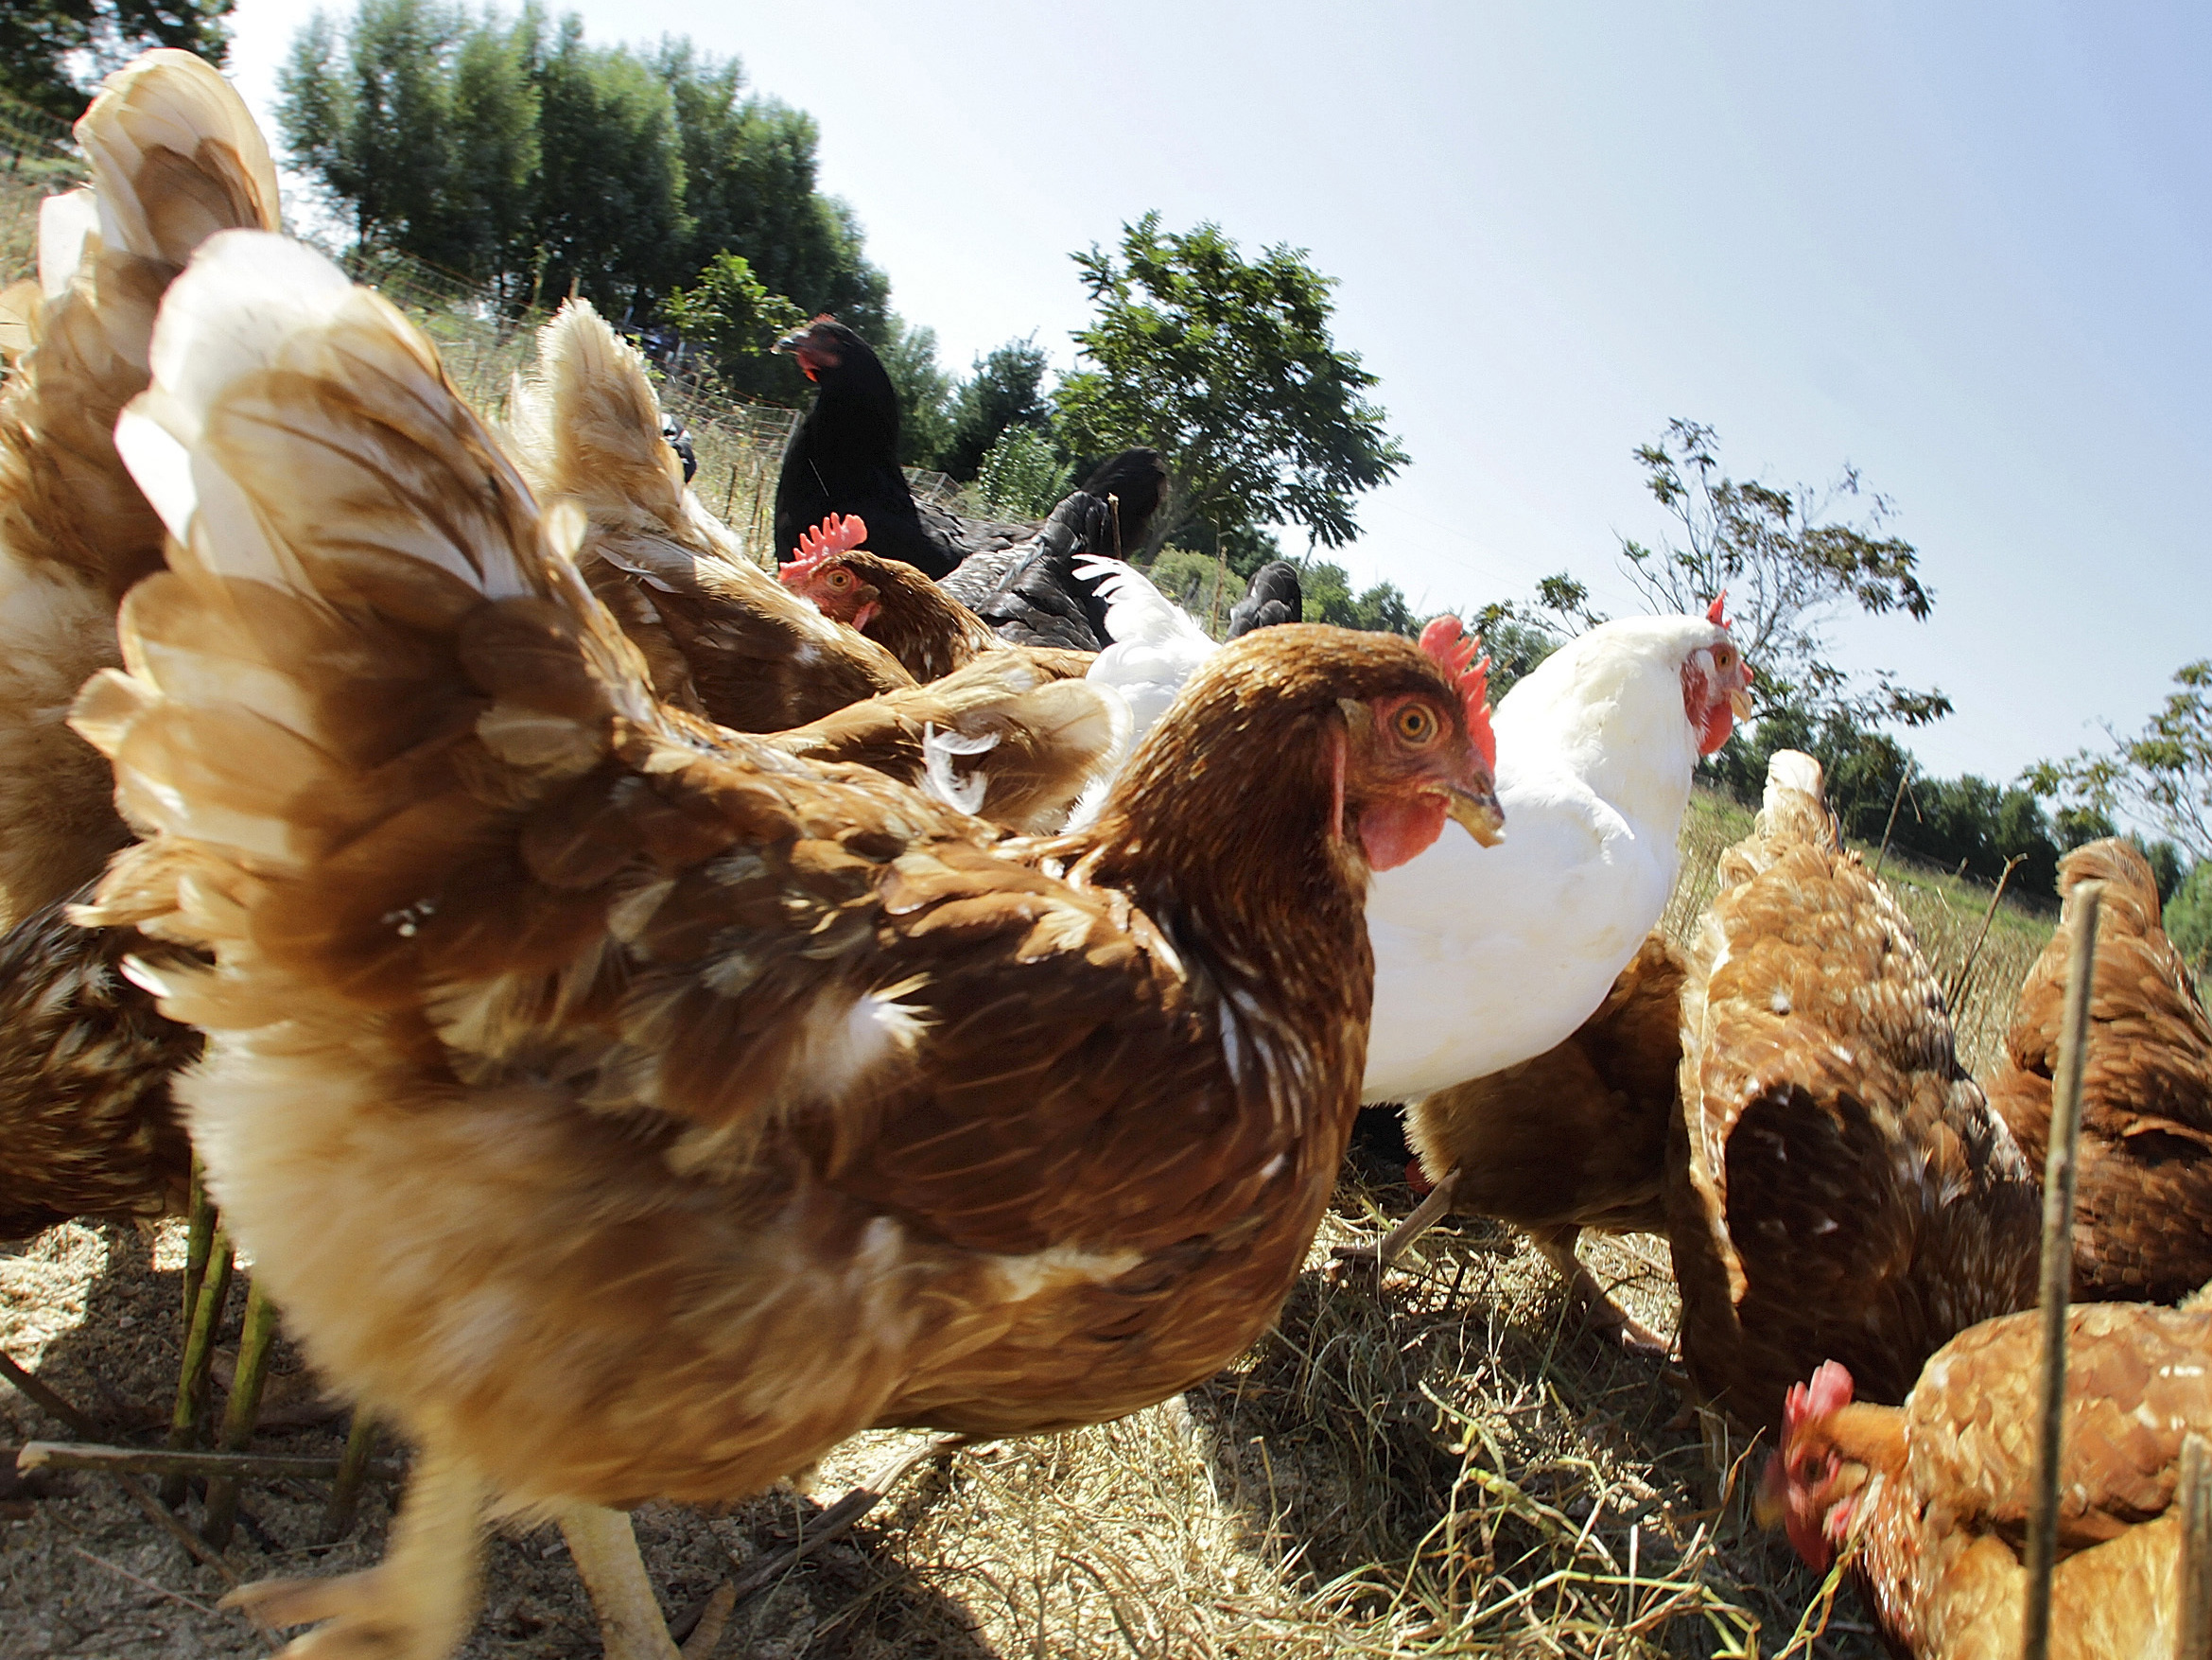 The FDA Doesn't Want Chickens To Explore The Great Outdoors